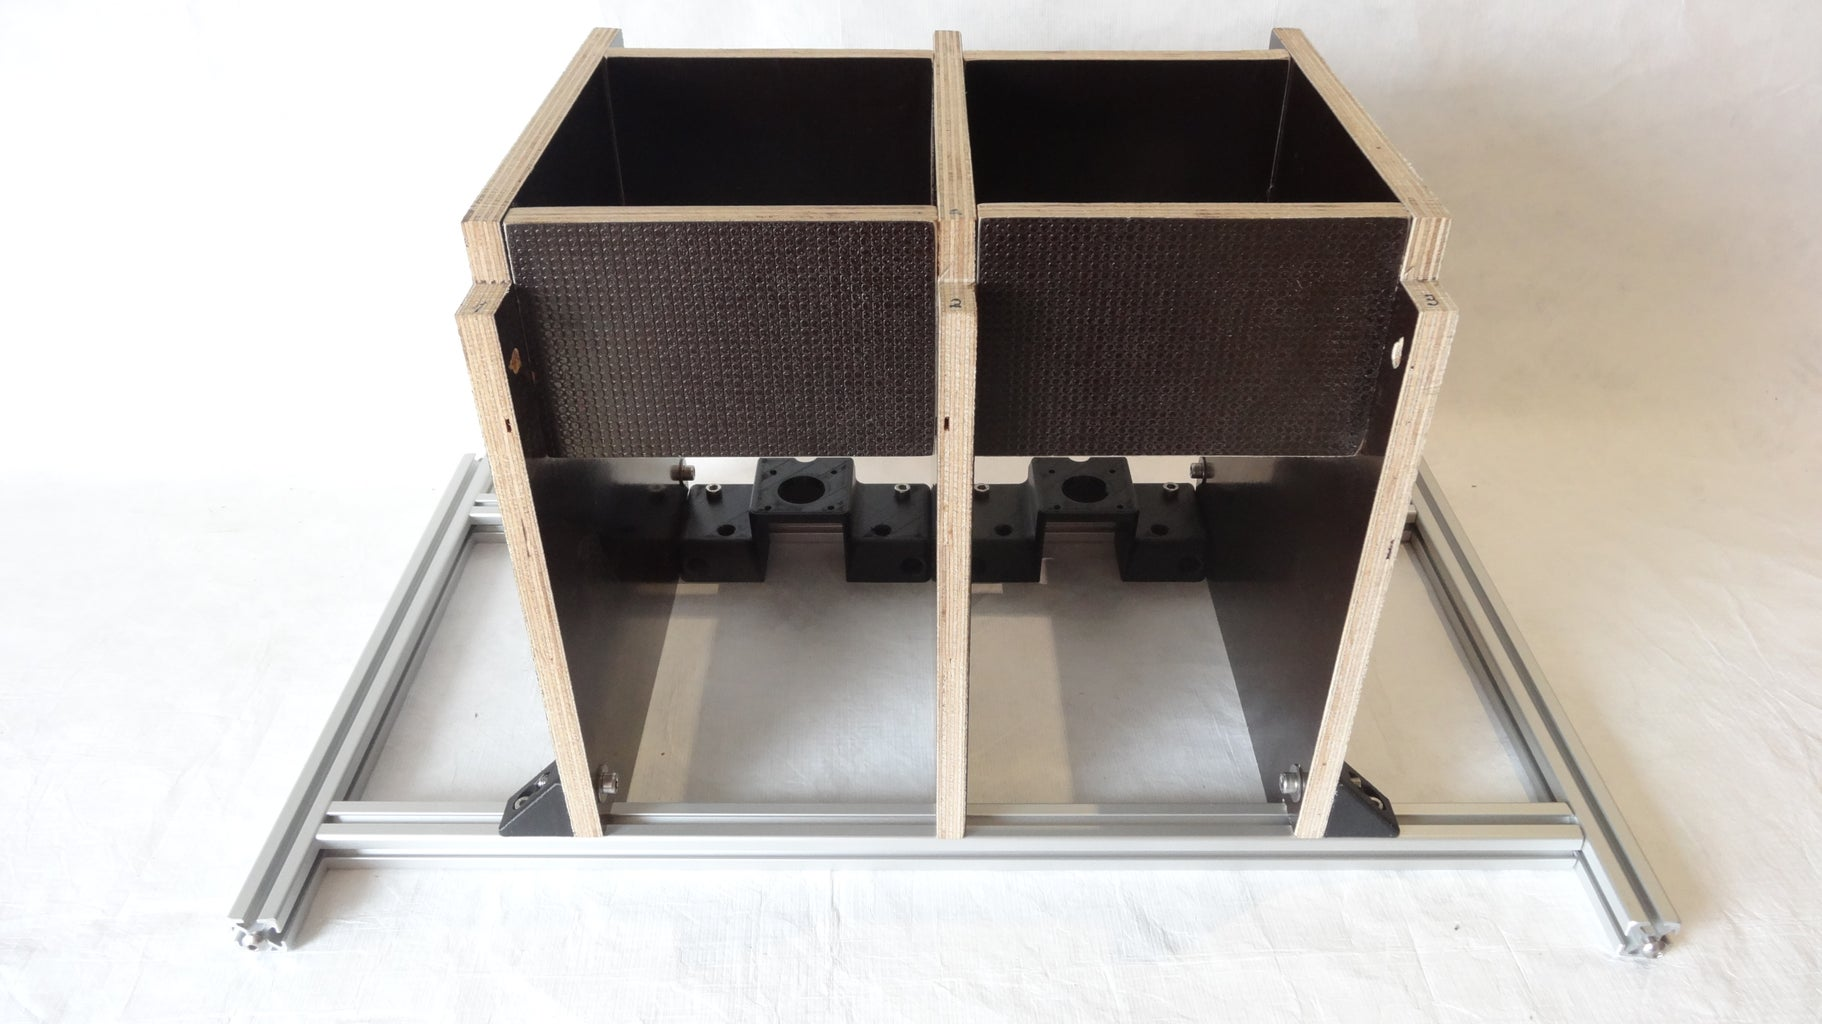 Connect the Wooden Box to the First Stage